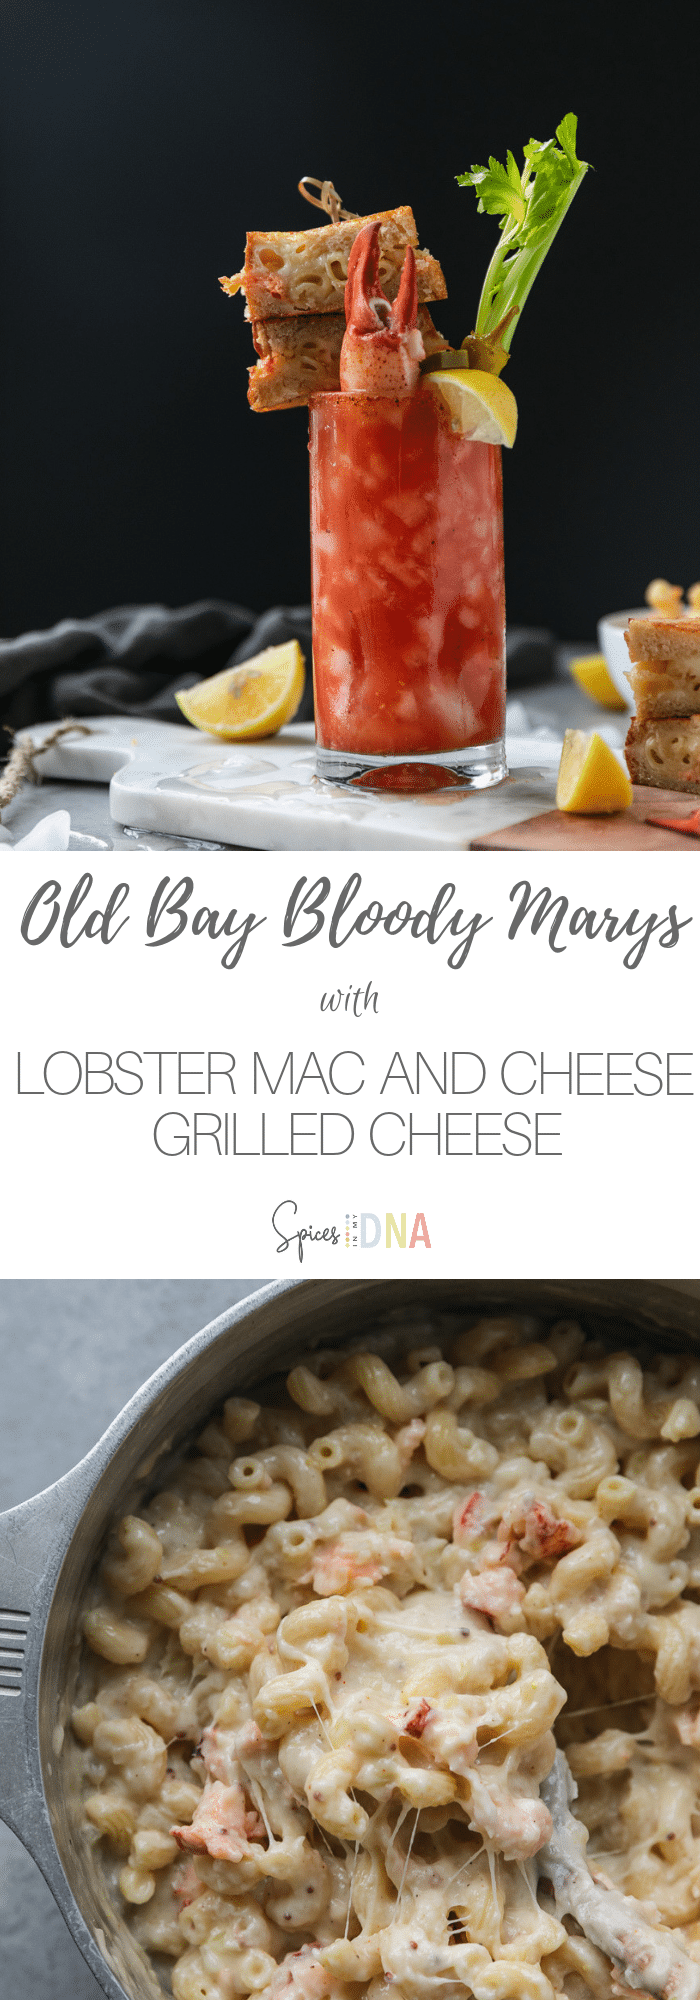 These Old Bay Bloody Marys with Lobster Mac and Cheese Grilled Cheese are such a fun cocktail to serve on game day or for your next brunch! The Bloody Marys are pretty classic, but with a little Old Bay twist! They're garnished with the most decadent grilled cheeses (there's lobster mac and cheese inside of them!), celery, lemon, and pickled veggies. So perfect to serve at a party! #bloodymary #oldbay #cocktail #brunch #gamedayrecipe #lobstermac #grilledcheese